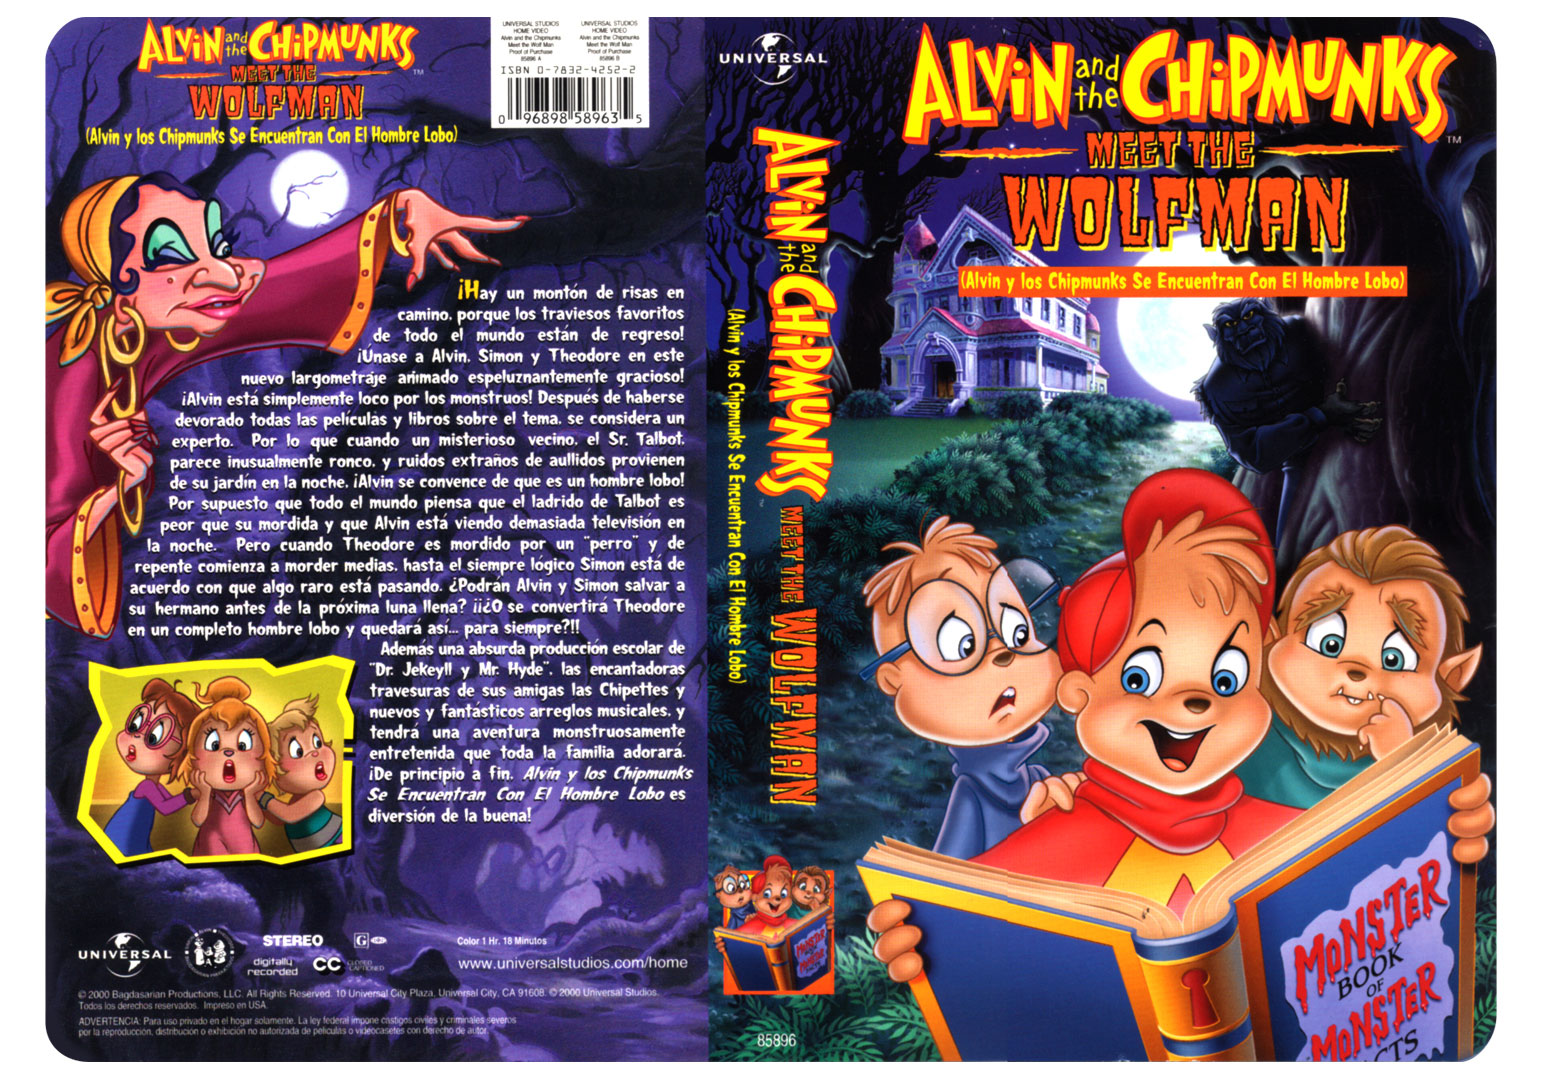 alvin and the chipmunks meet wolfman amazon